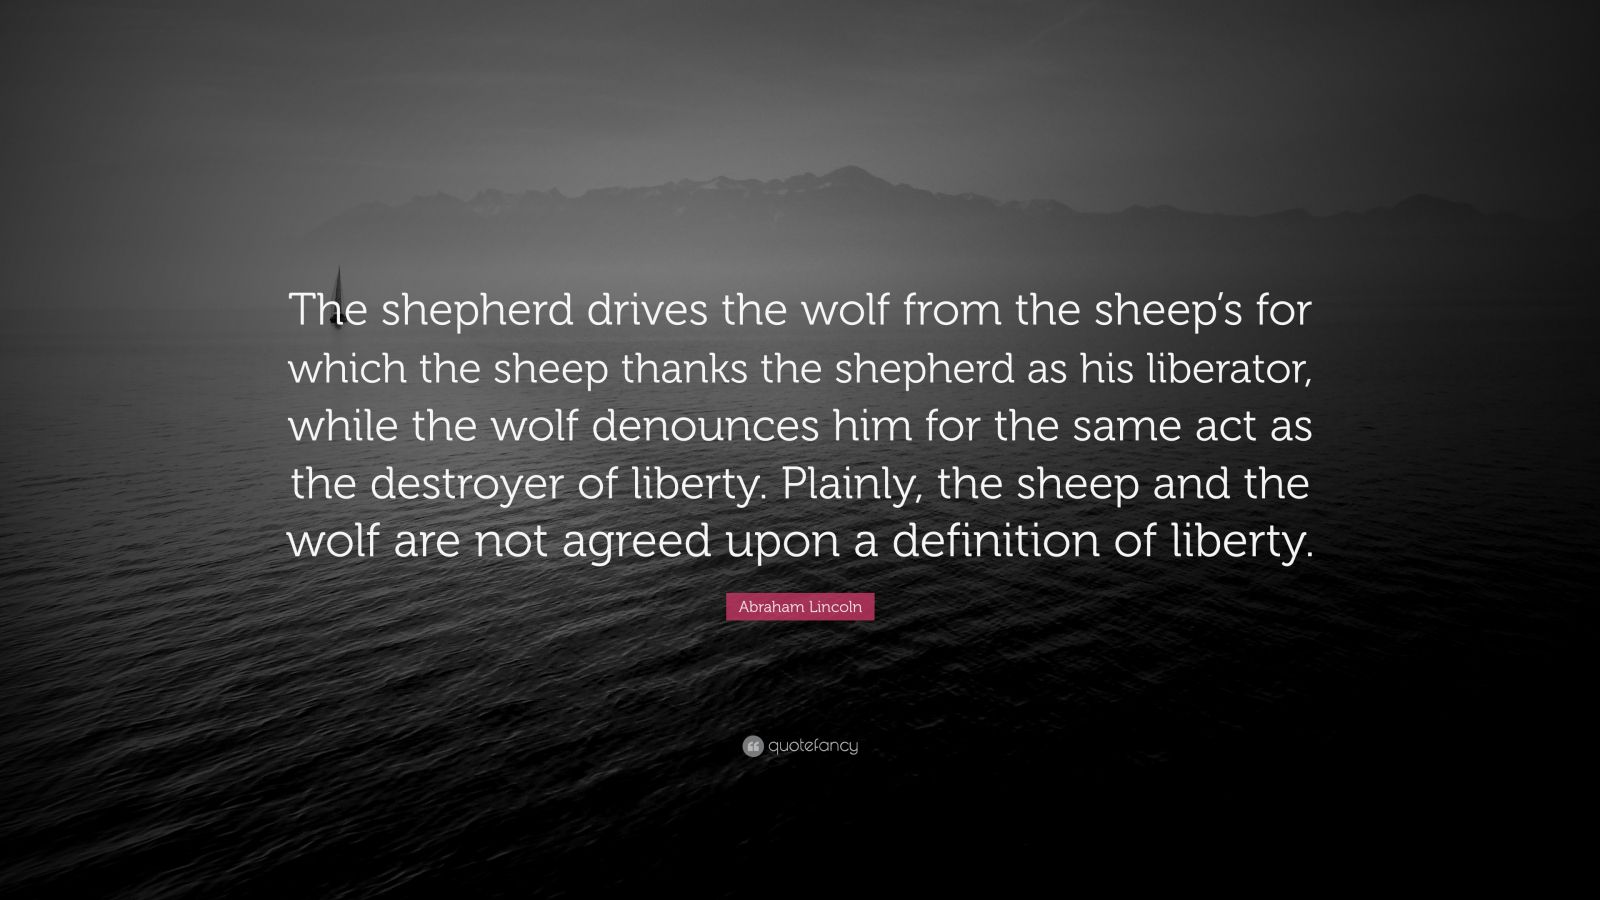 """Abraham Lincoln Quote: """"The shepherd drives the wolf from the sheep's for which the sheep thanks the shepherd as his liberator, while the wolf denounces him for the same act as the destroyer of liberty. Plainly, the sheep and the wolf are not agreed upon a definition of liberty."""""""